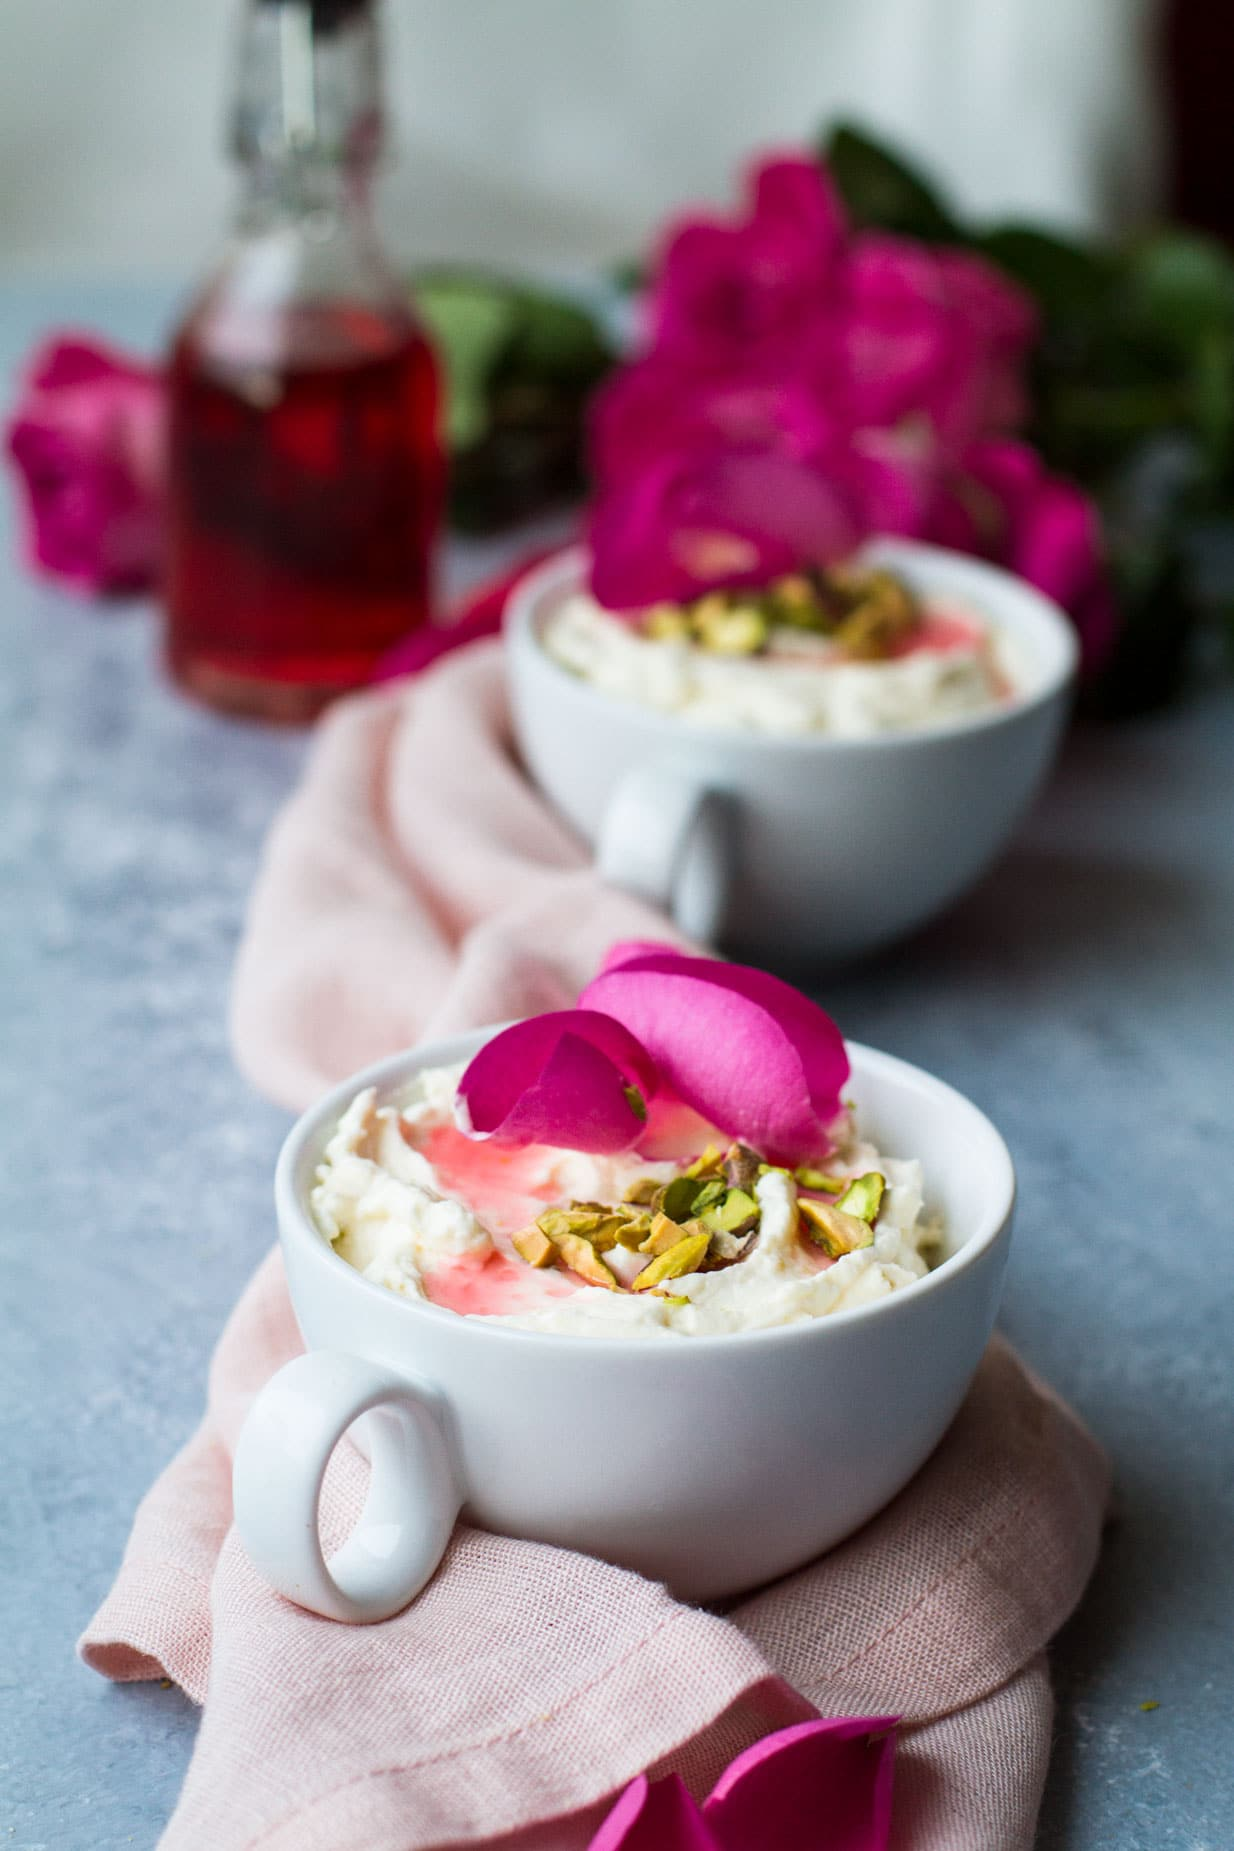 White cup with white mouse, chopped pistachios and rose petals. Roses and another cup blurred in the background. Blue table and pink cloth.